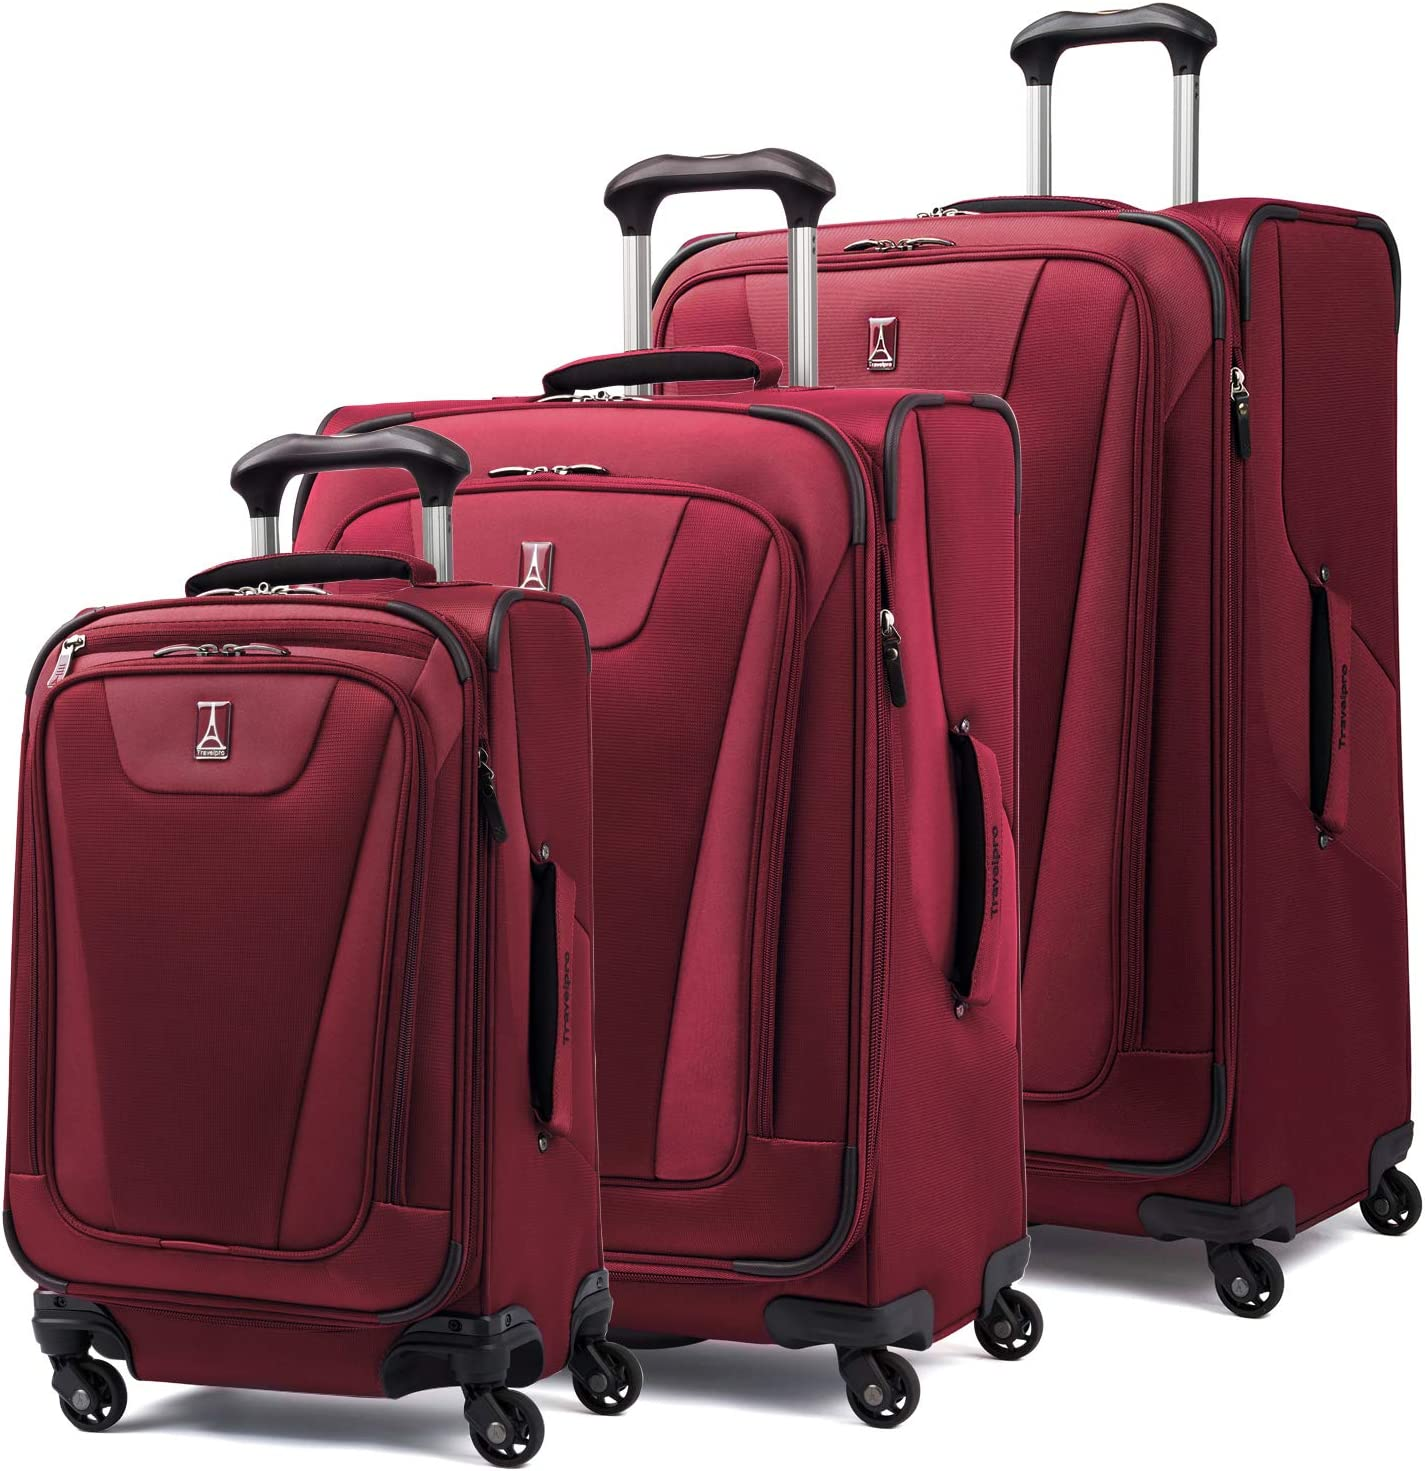 Top 7 Best Lightweight Luggage for International Travel 5